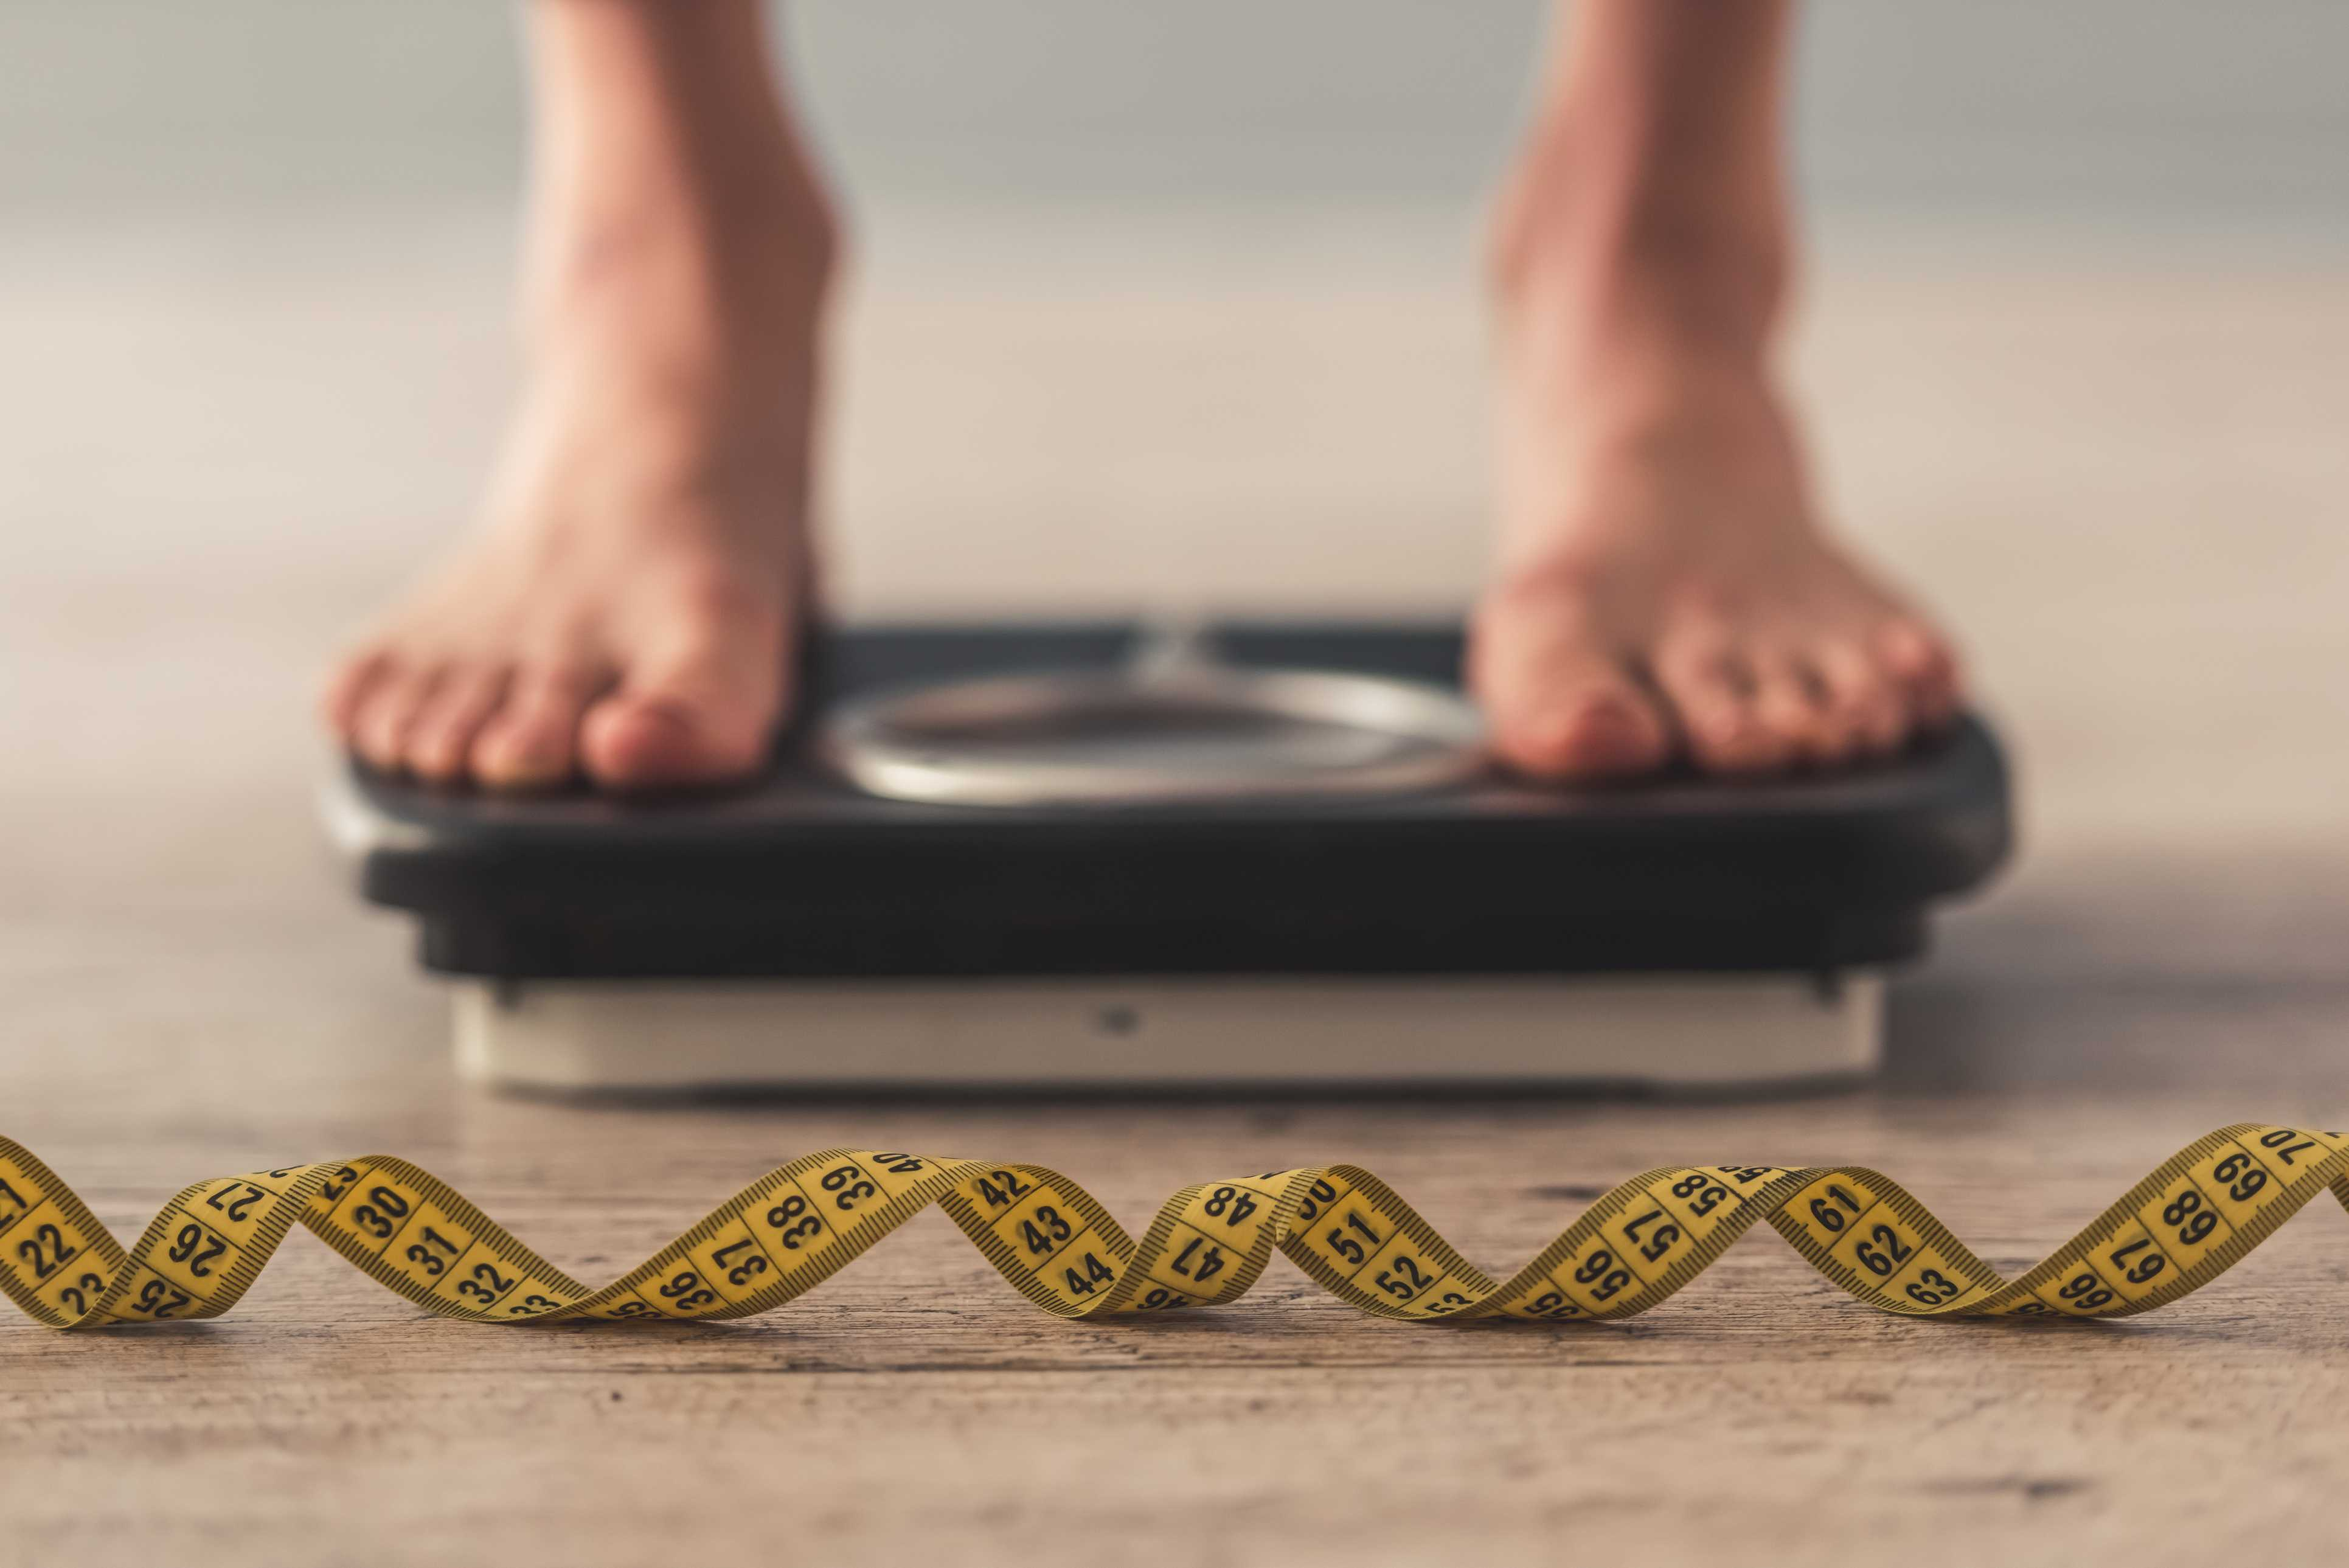 Weight loss and diabetes